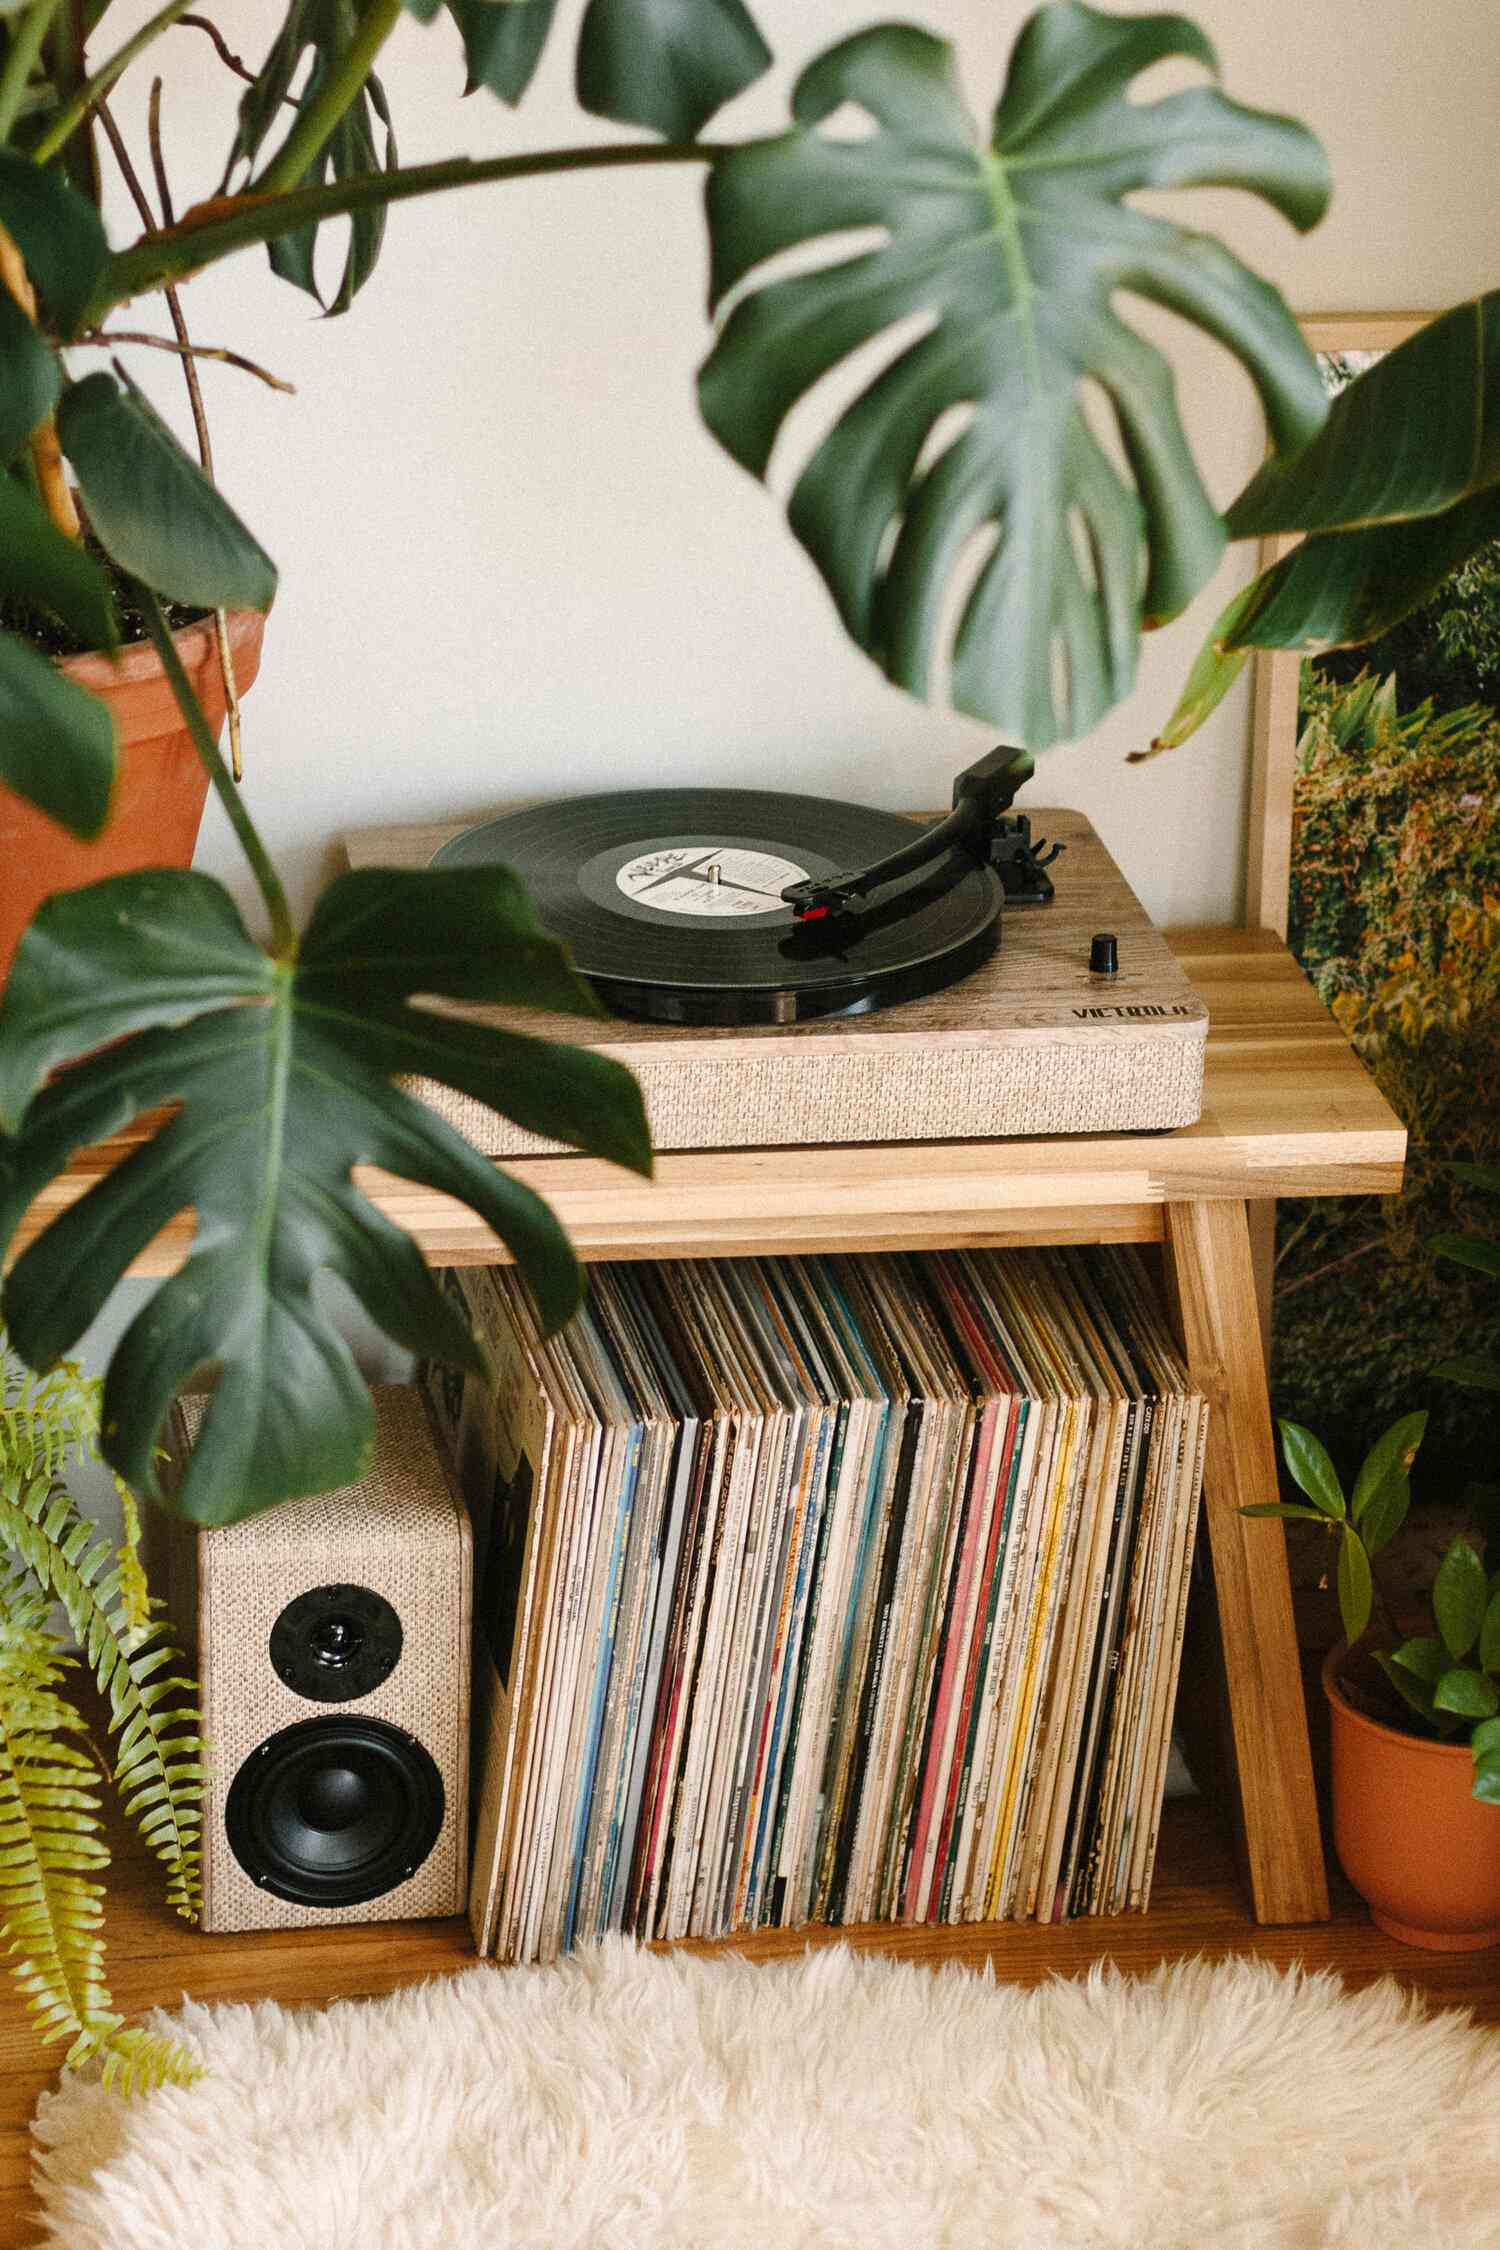 Wooden bench topped with record player, stacked records and a speaker beneath